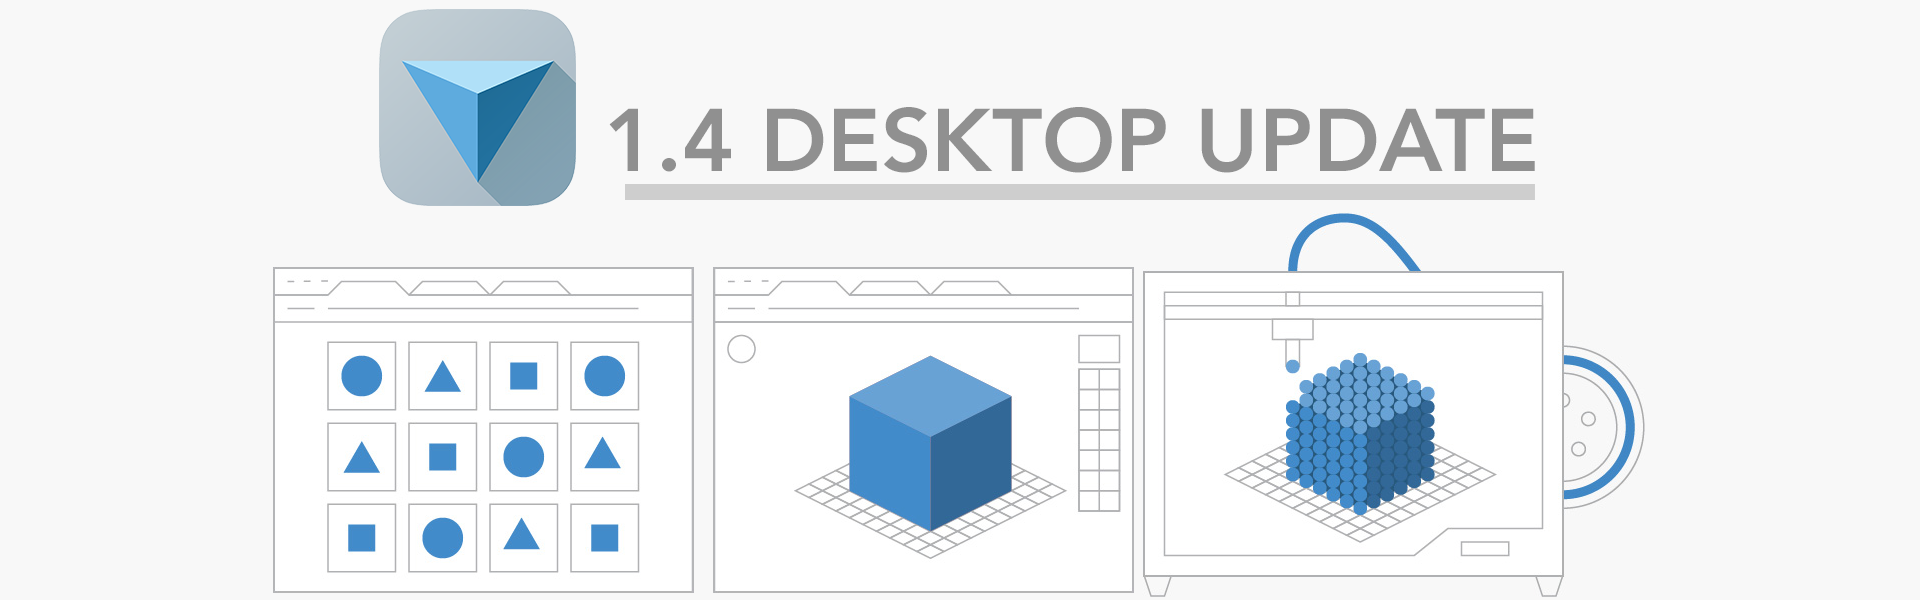 Autodesk 123D Design Update 1.4 for Desktop